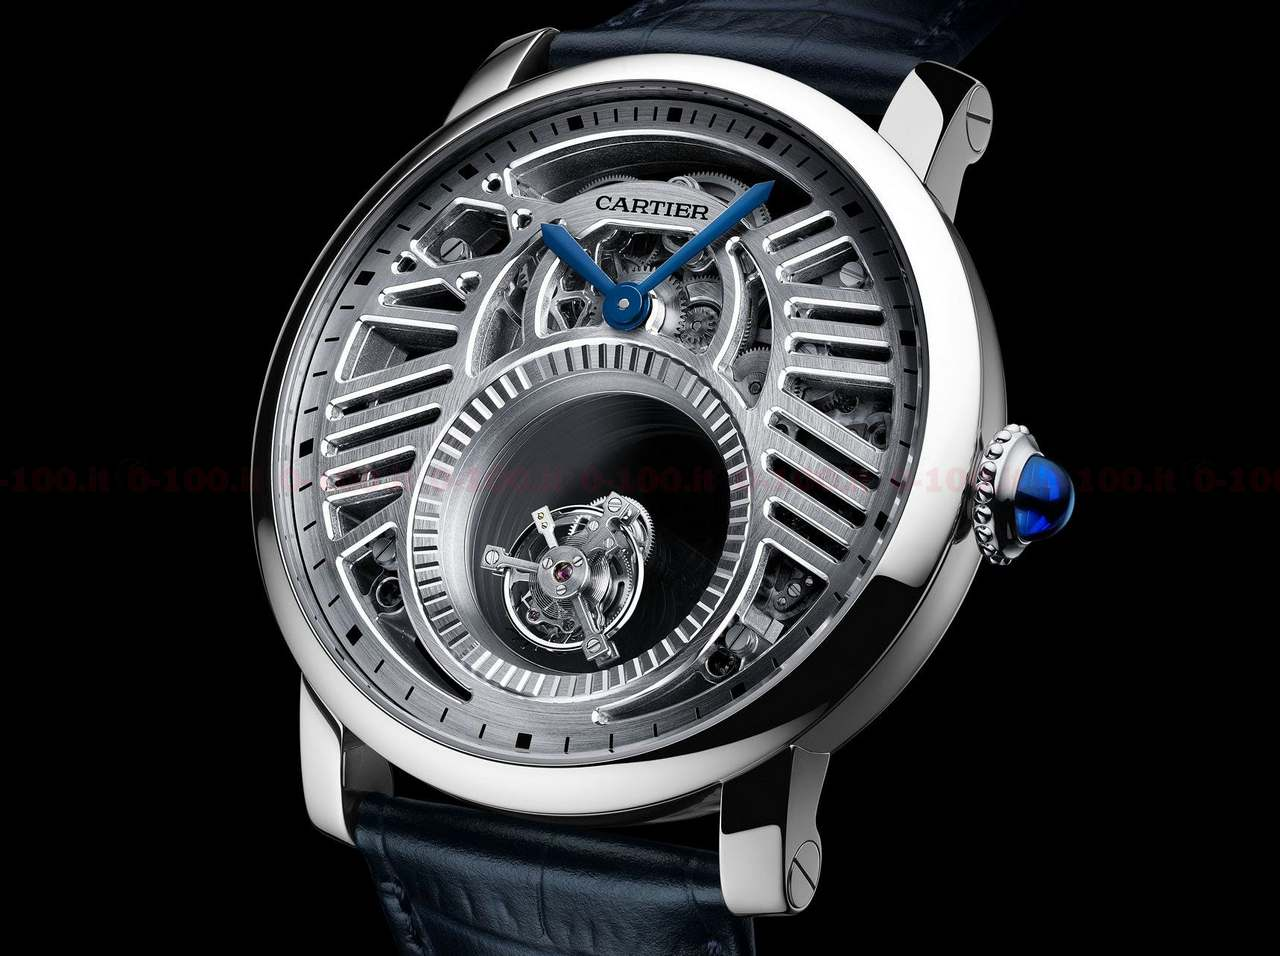 Anteprima SIHH 2018_ Rotonde de Cartier Skeleton Mysterious Double Tourbillon Limited Edition_price_0-1002